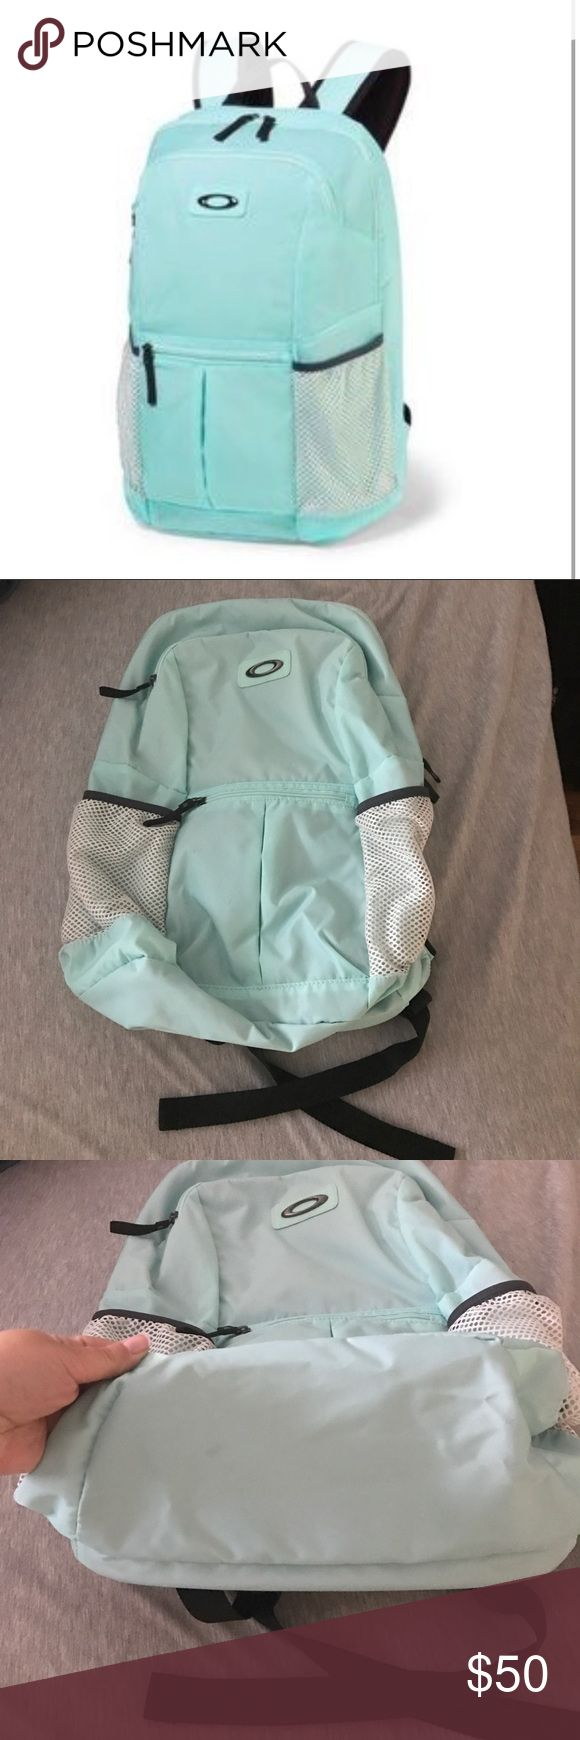 FINAL OFFER- Authentic Oakley Performance Backpack Authentic Oakley Performance Backpack  Color- Teal and black, mesh pockets for water bottle are white  Padded shoulder straps. Storage compartment for a laptop. Side has two water bottle pockets  Lots of compartments and pockets See pictures for some small black spots (nothing even really noticeable but I would like to point them out before purchase)  Comfortable backpack and cute colors 😊 Used once, in amazing condition. Oakley Bags…